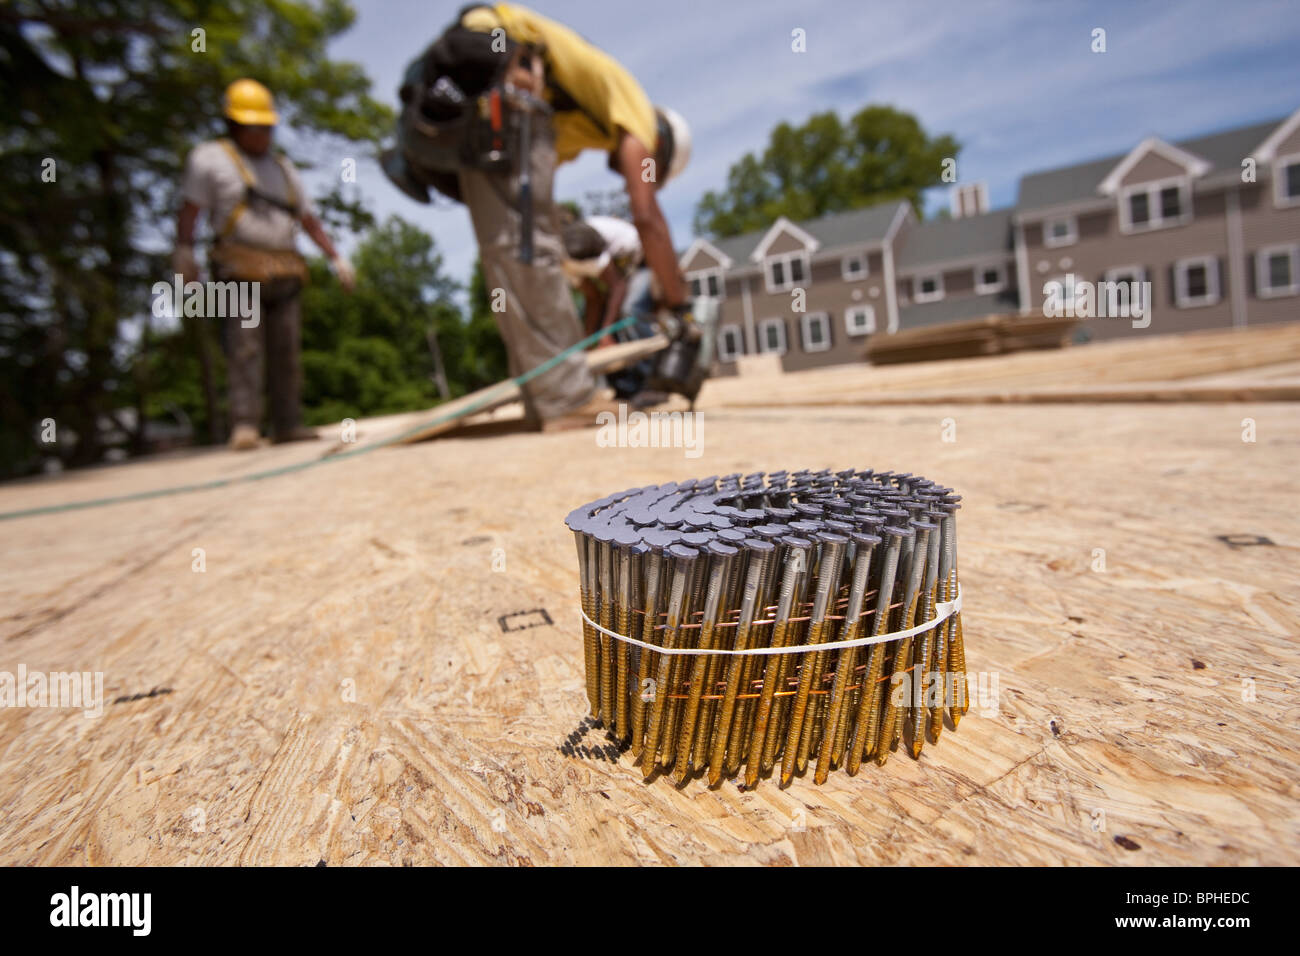 Bundle of nails with a carpenter using nail gun in the background - Stock Image